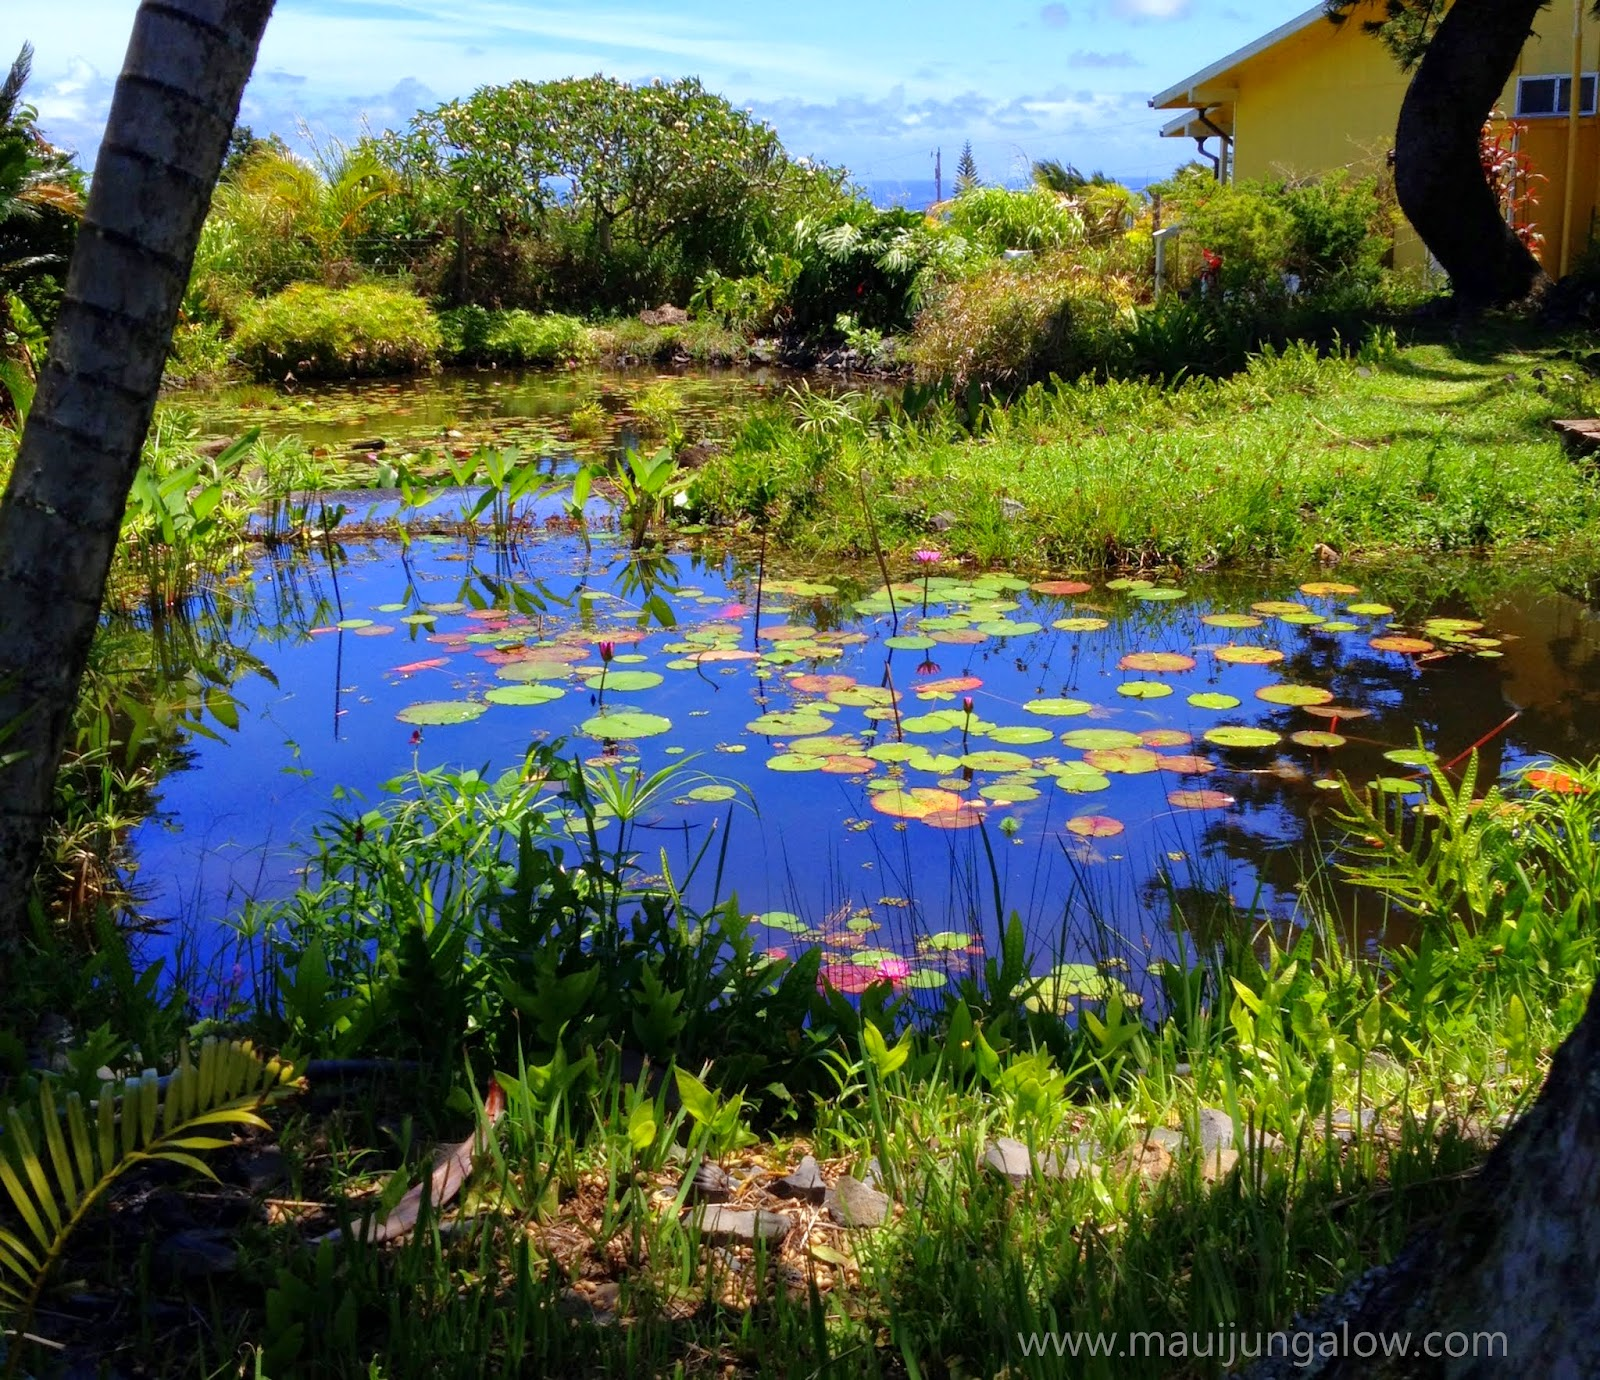 Maui jungalow the gorgeous maui water lily farm one of the water lily ponds at the maui water lily farm izmirmasajfo Gallery